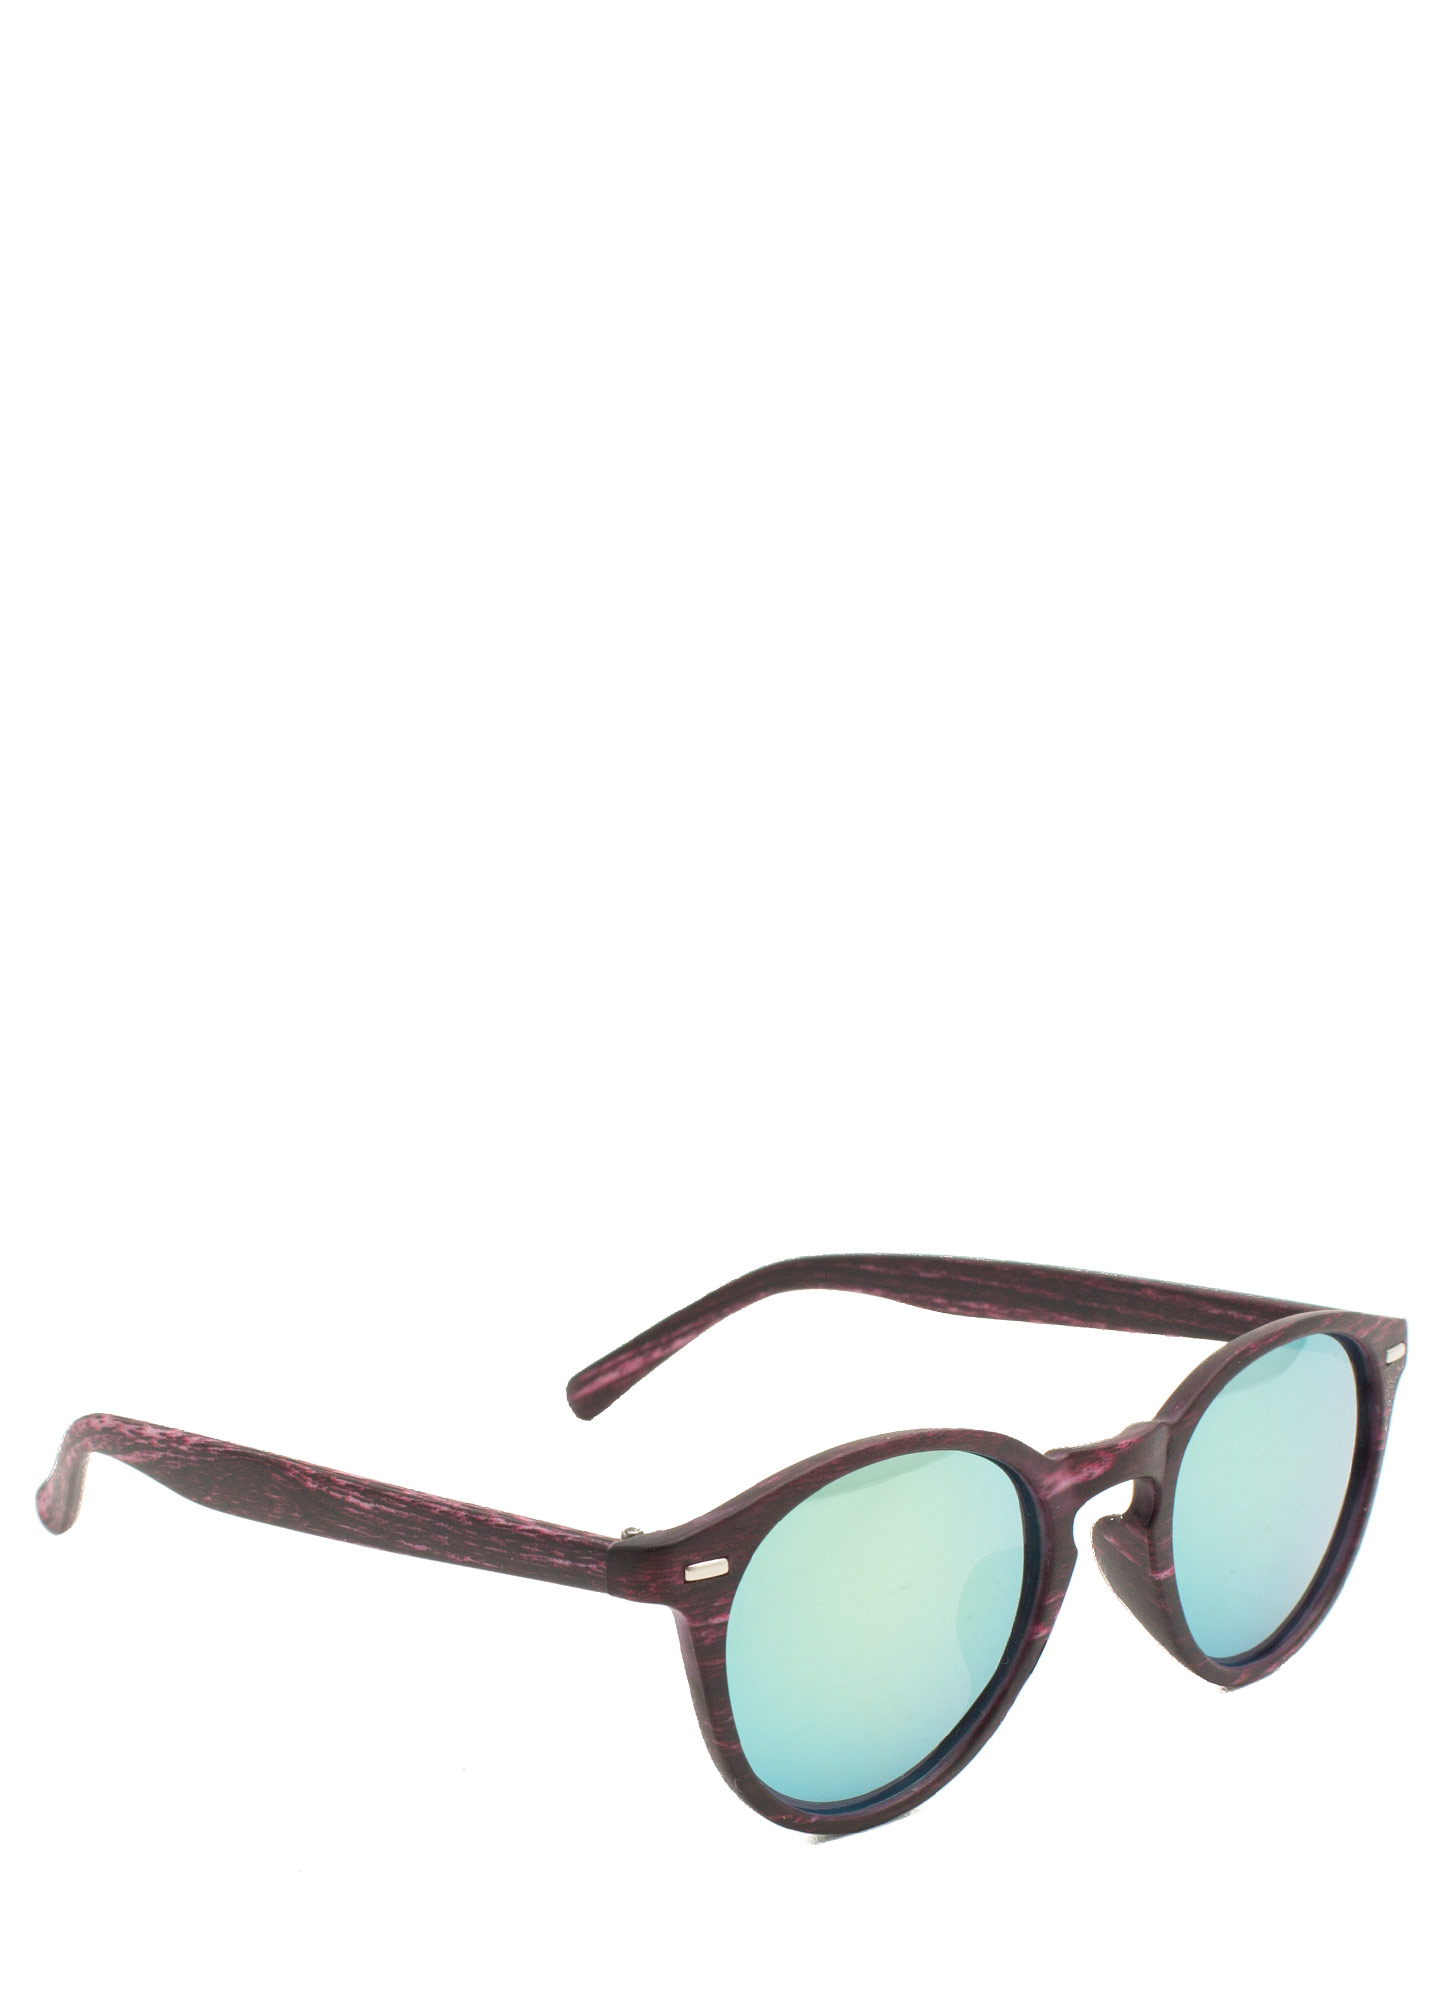 Wood Finish Reflective Sunglasses OLIVEBERRY